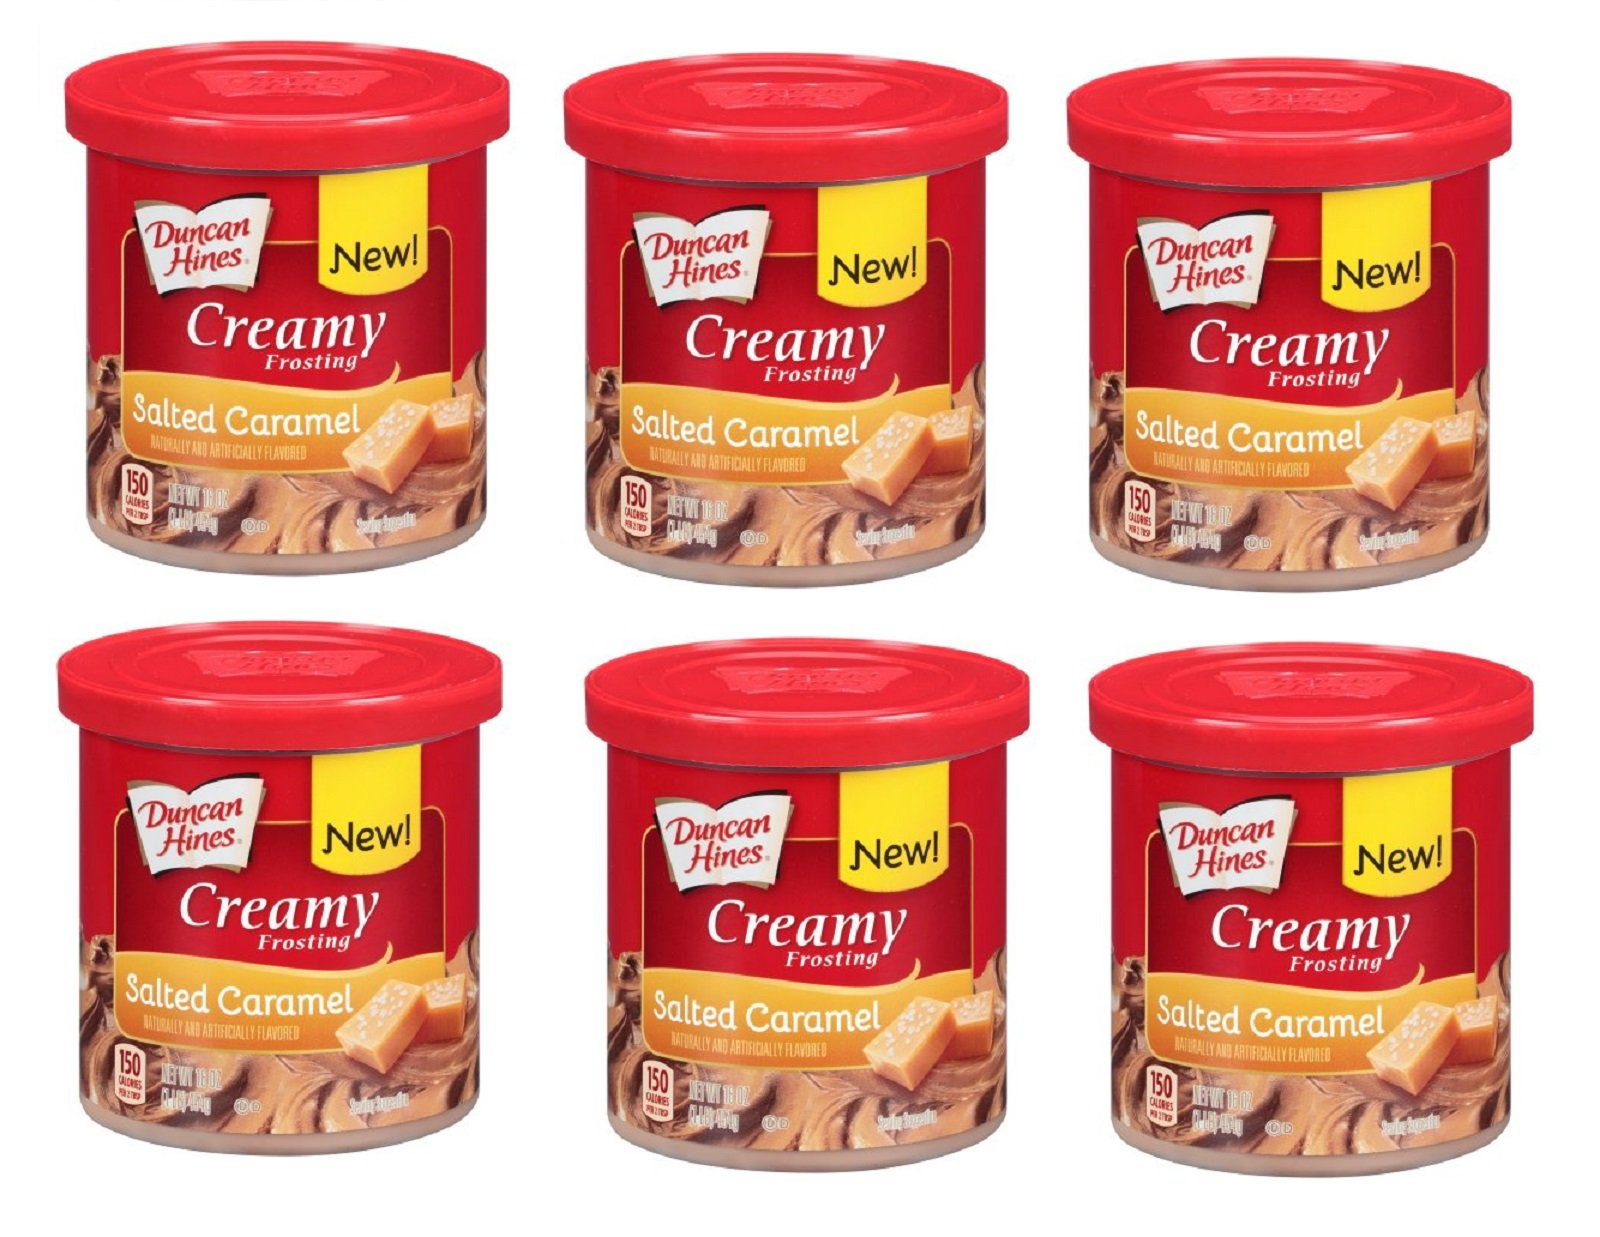 Duncan Hines Creamy Frosting goes on Smooth and Velvety 16 Oz. Salted Caramel (Pack of 6)